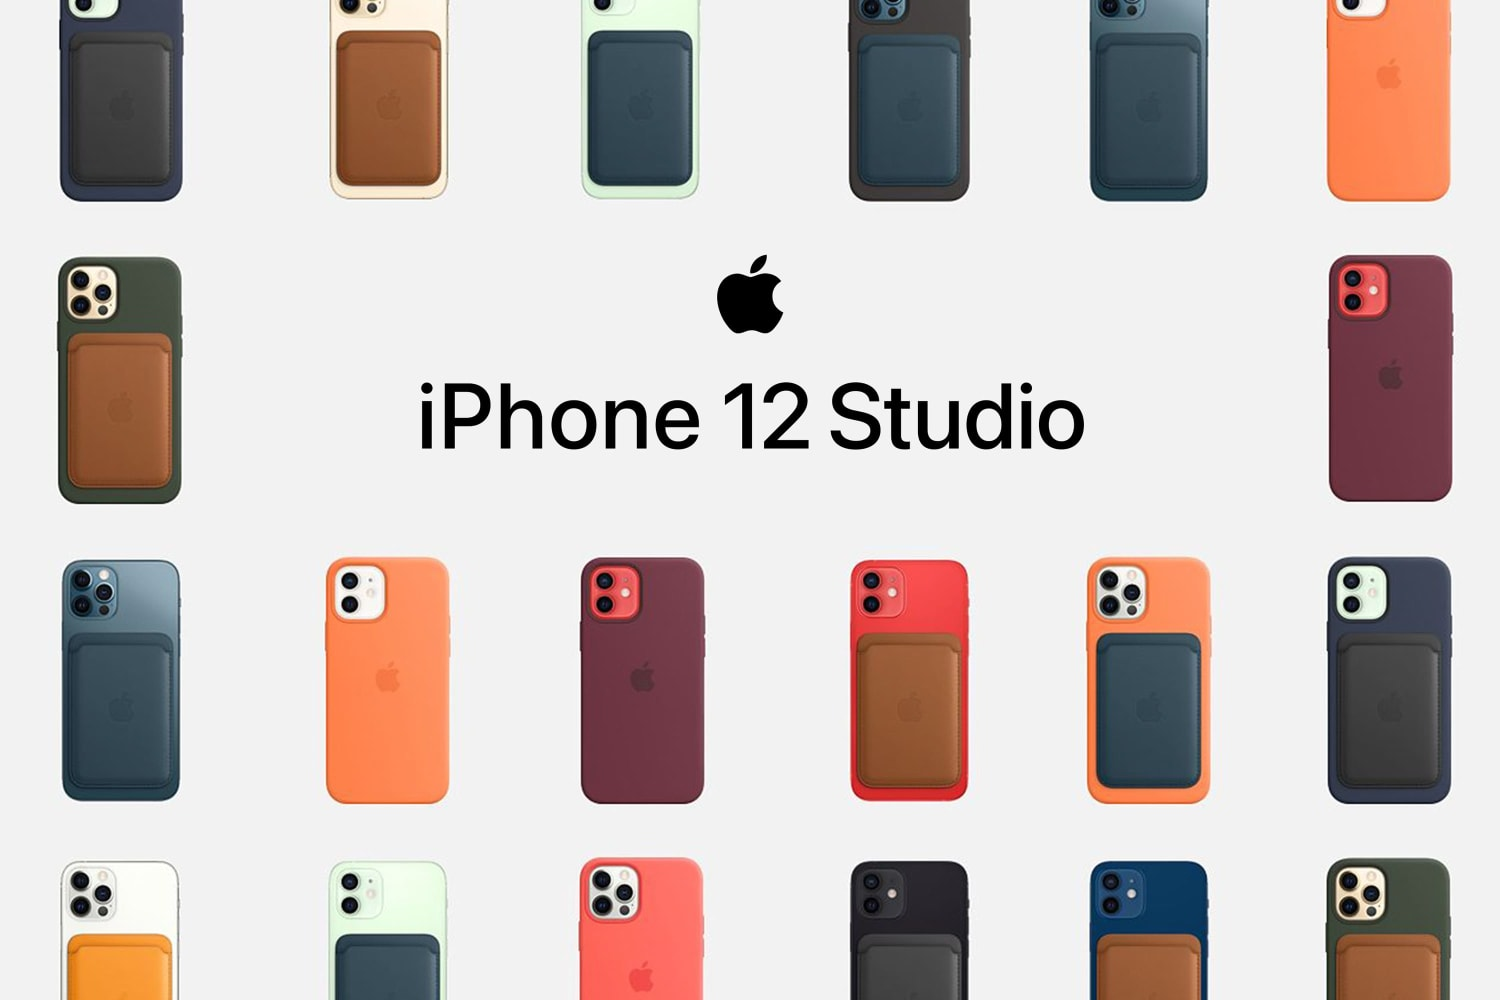 apple-launches-iphone-12-studio-for-mobile-and-tablet-browsers-20201109-1